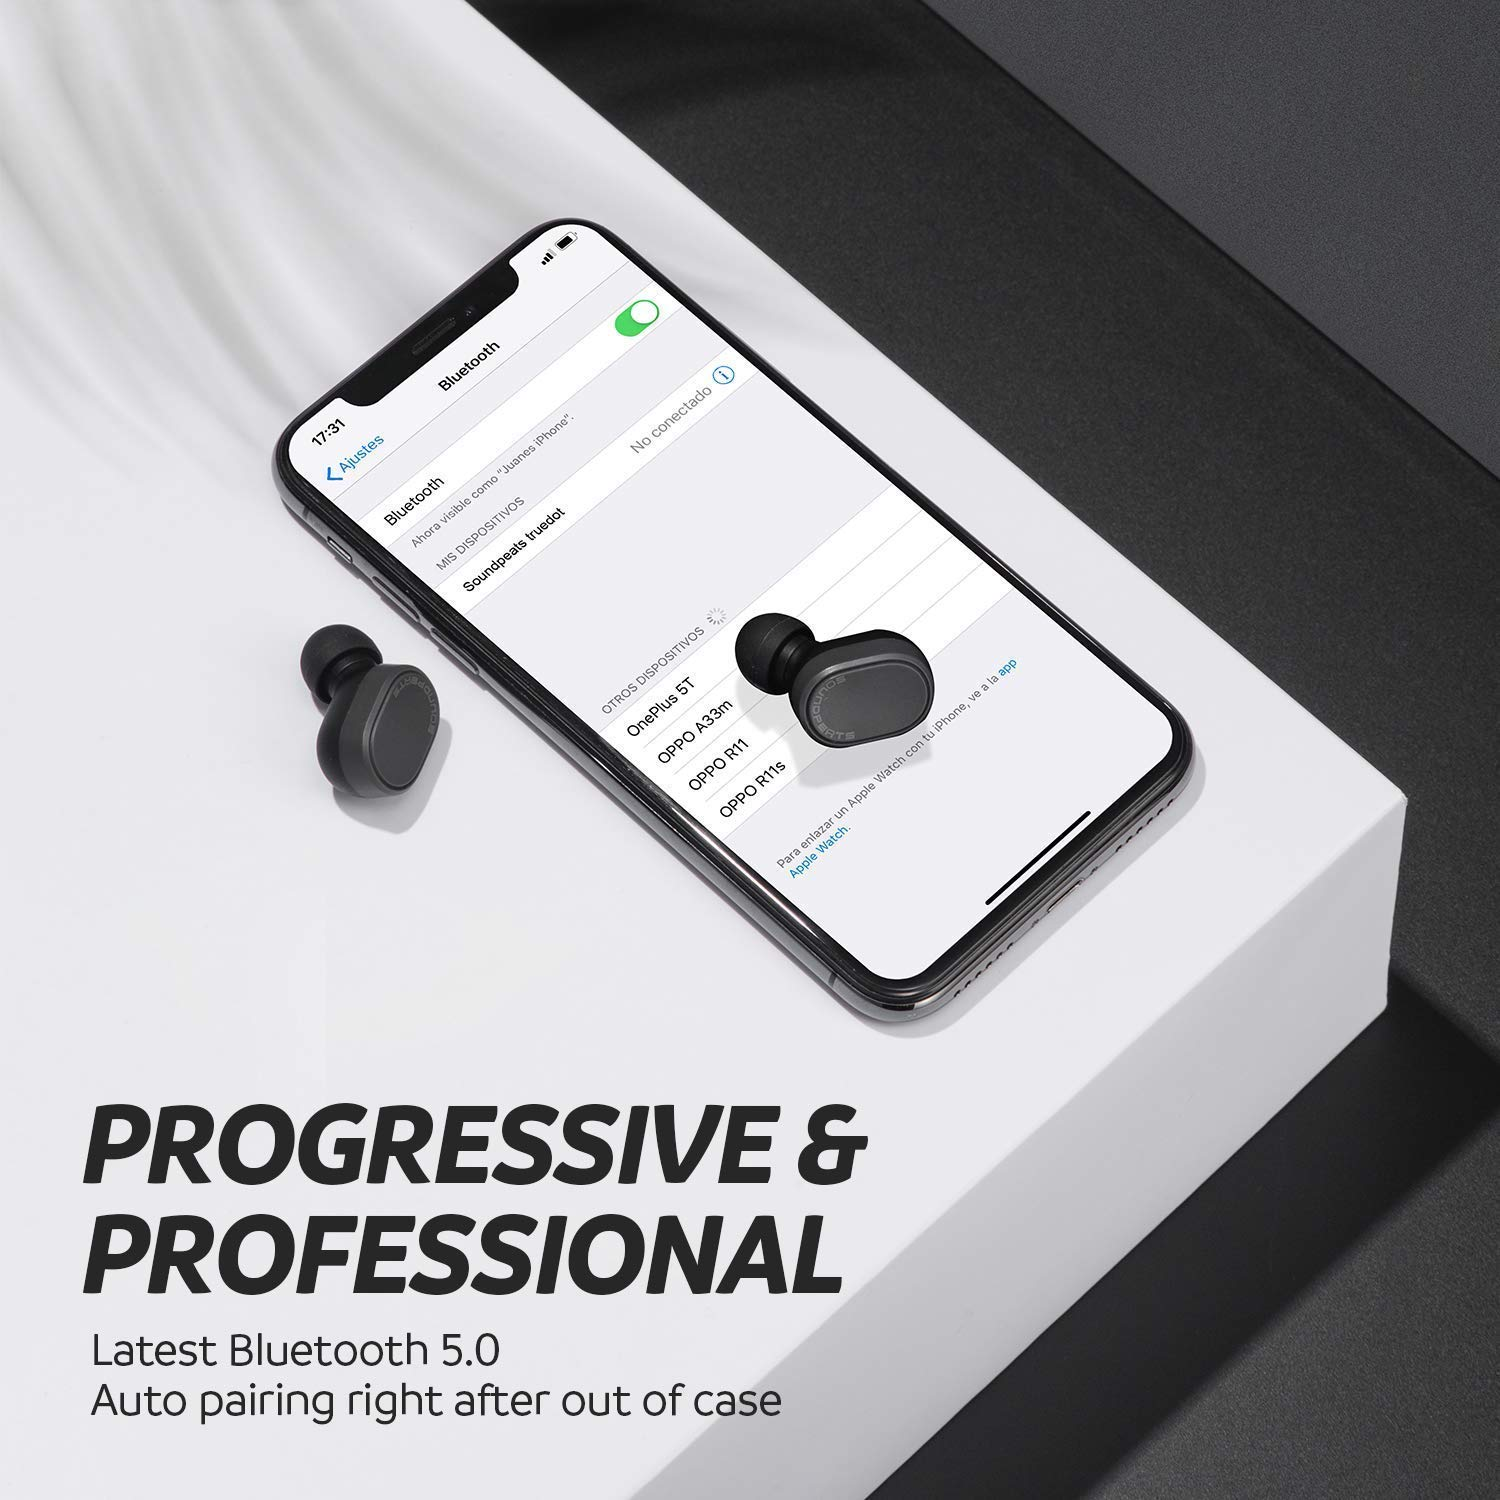 Auriculares Inalámbricos Bluetooth 5.0 SoundPEATS Truedot Cascos In-Ear True Wireless Invisibles Sonido Estéreo Mini Audífonos Gemelos Manos Libres ...